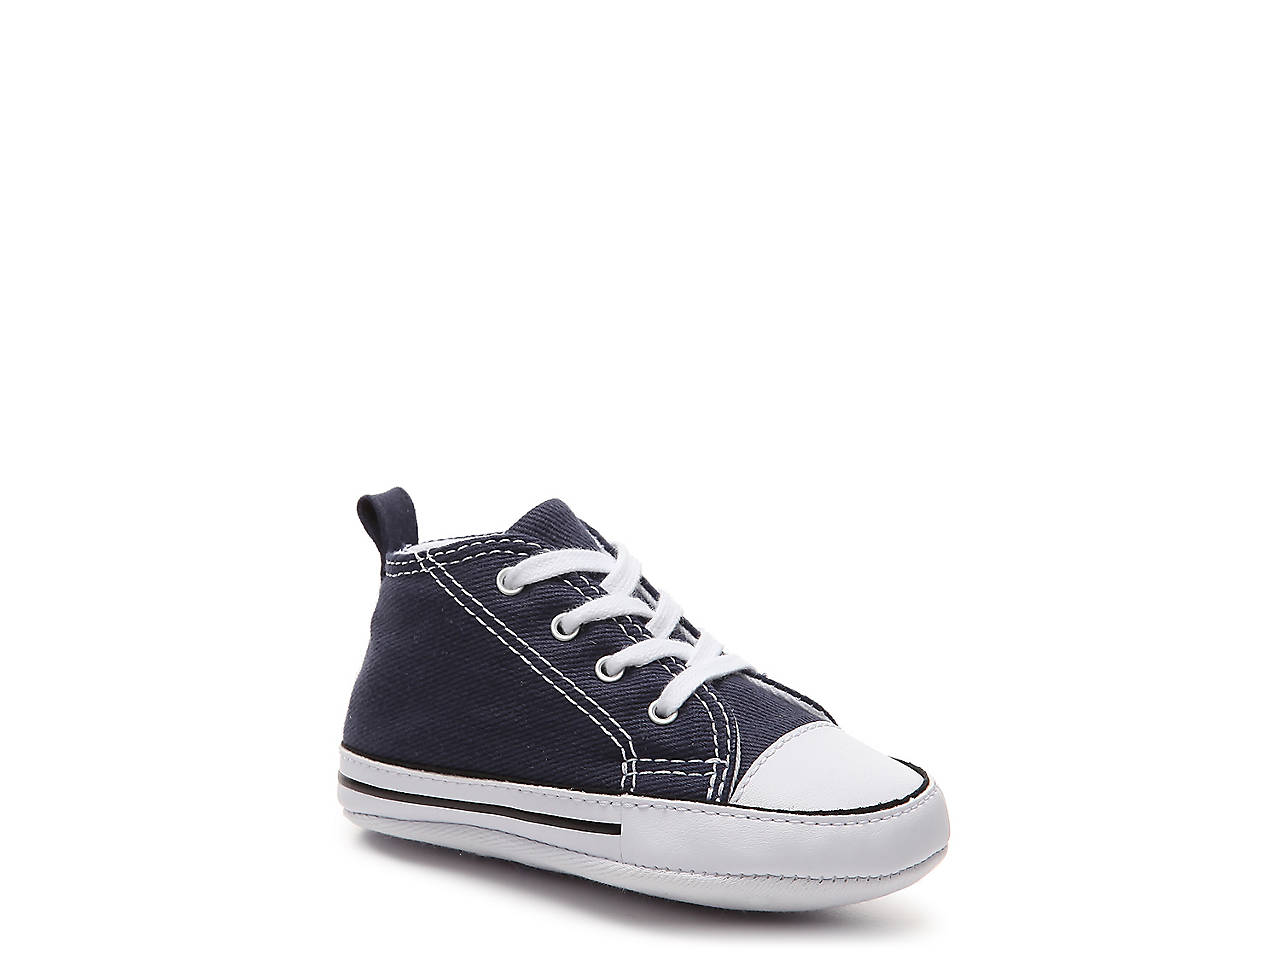 87fa6df954a1db Converse Chuck Taylor All Star First Star Infant Crib Shoe Kids ...